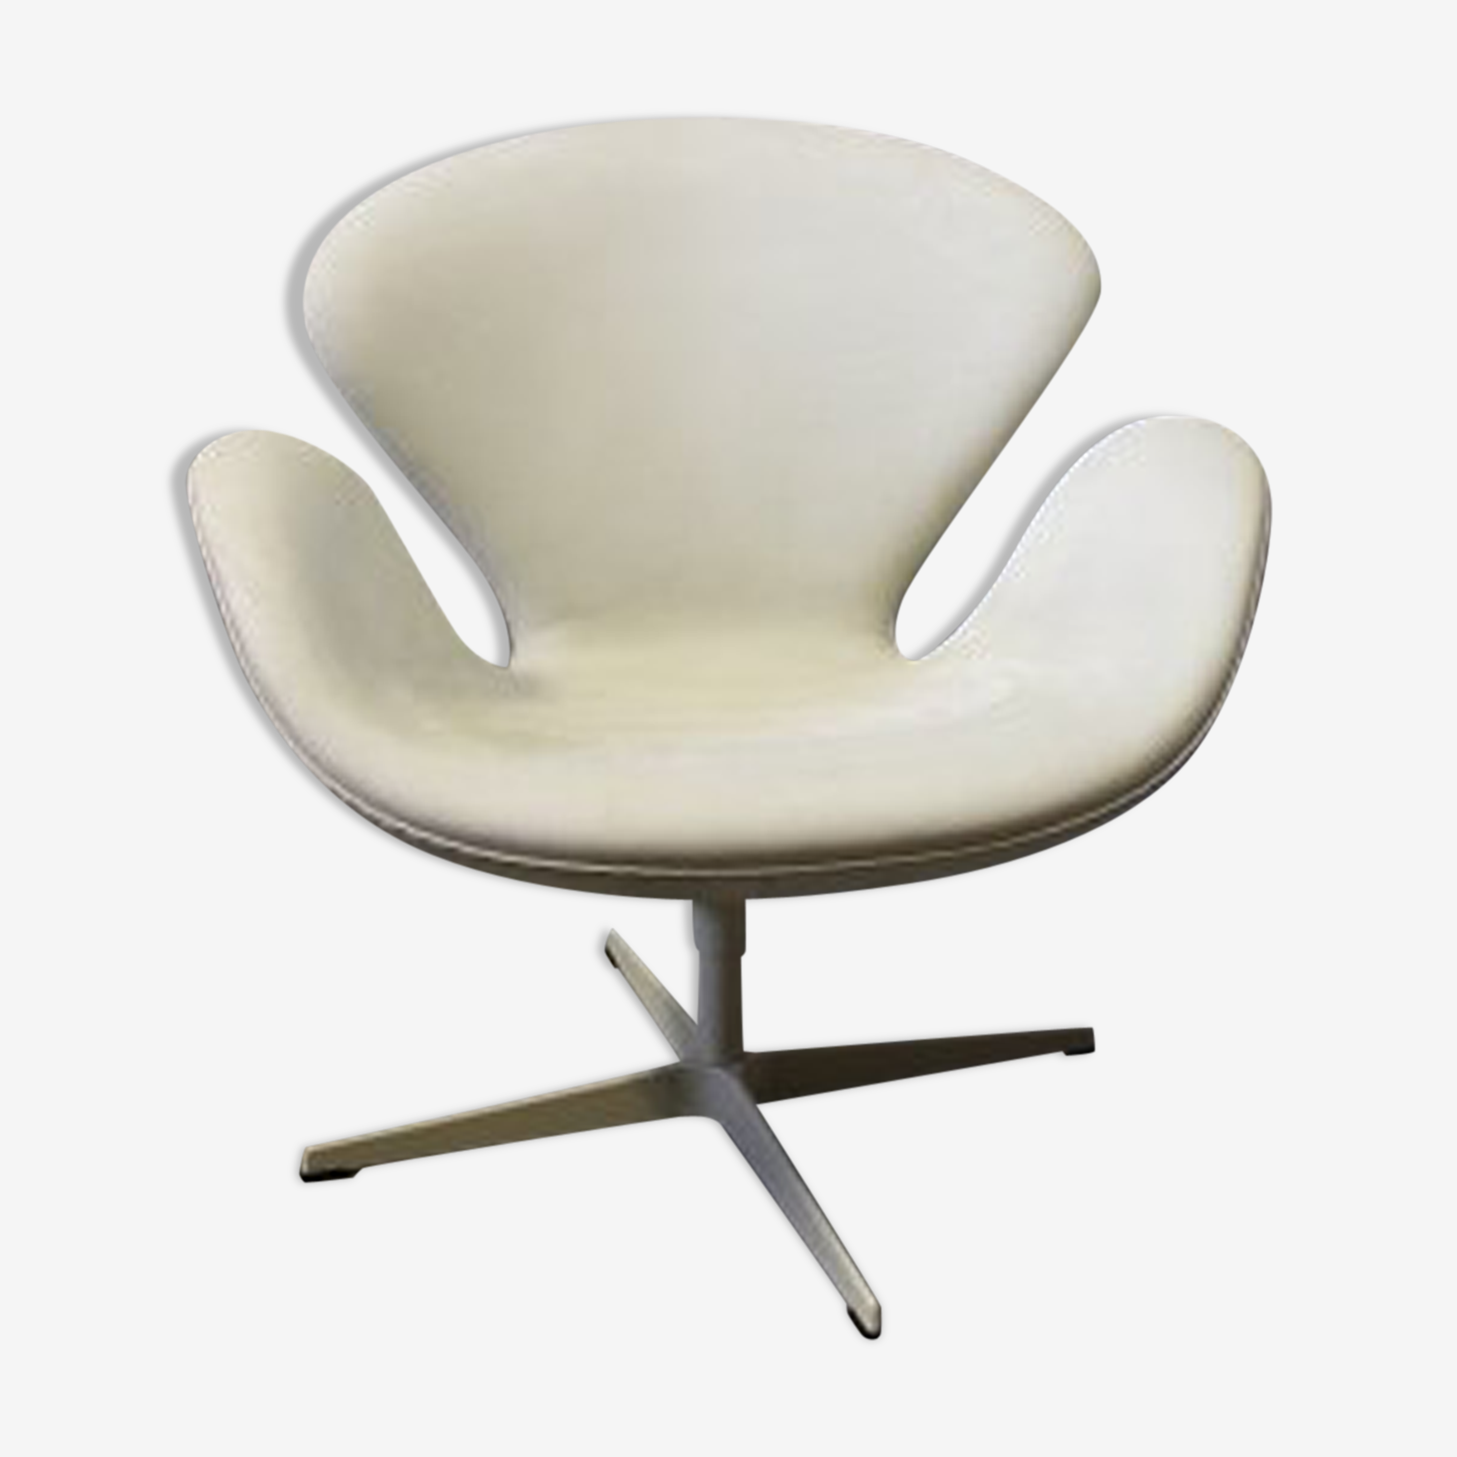 Arne Jacobsen Swan Chair Leather White Design Y53f1zx